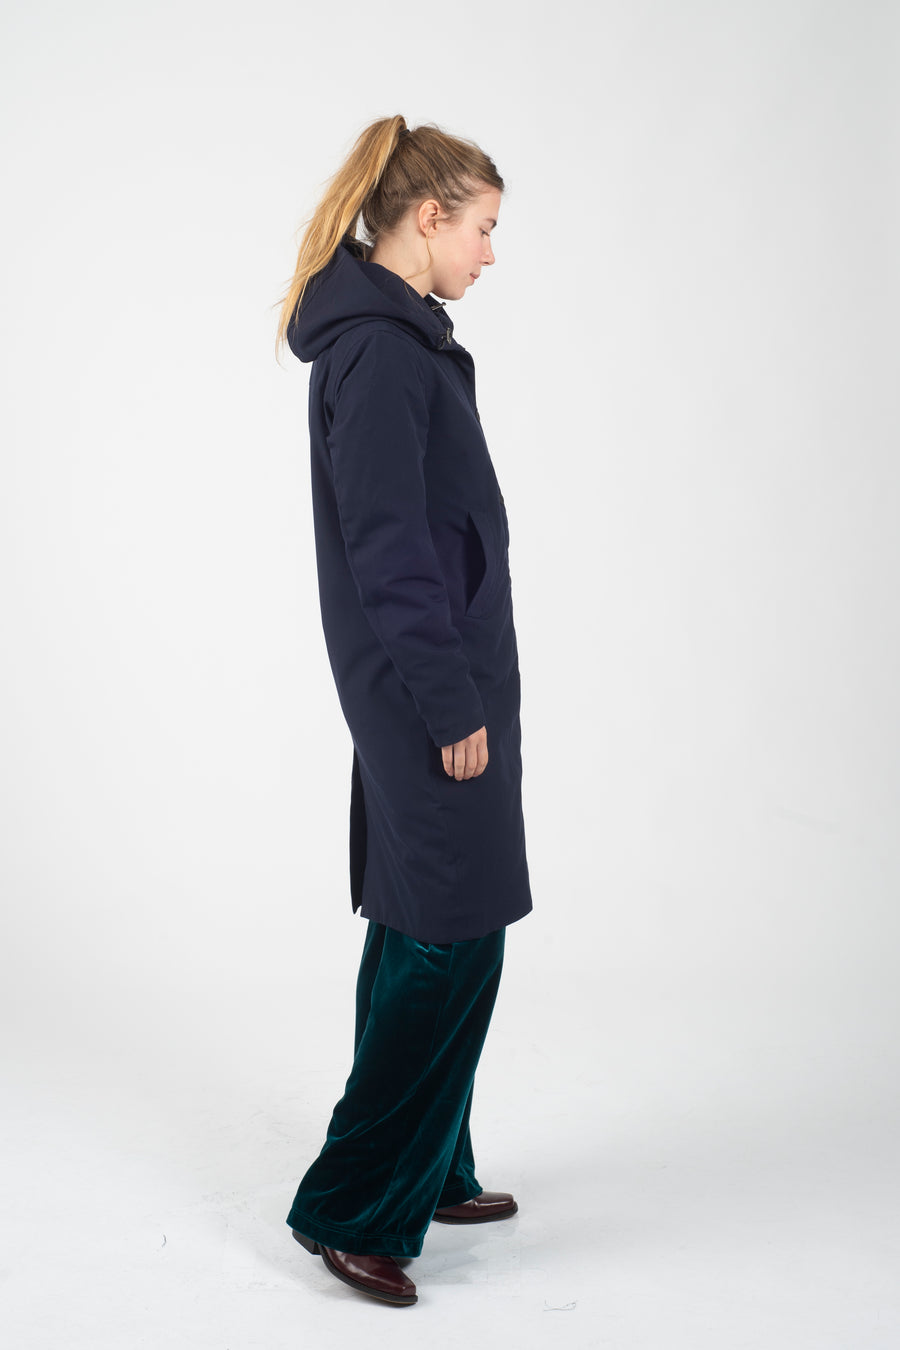 Not So  Long Tube Berlingo Navy - Welter Shelter - Waterproof, Windproof, breathable Packable